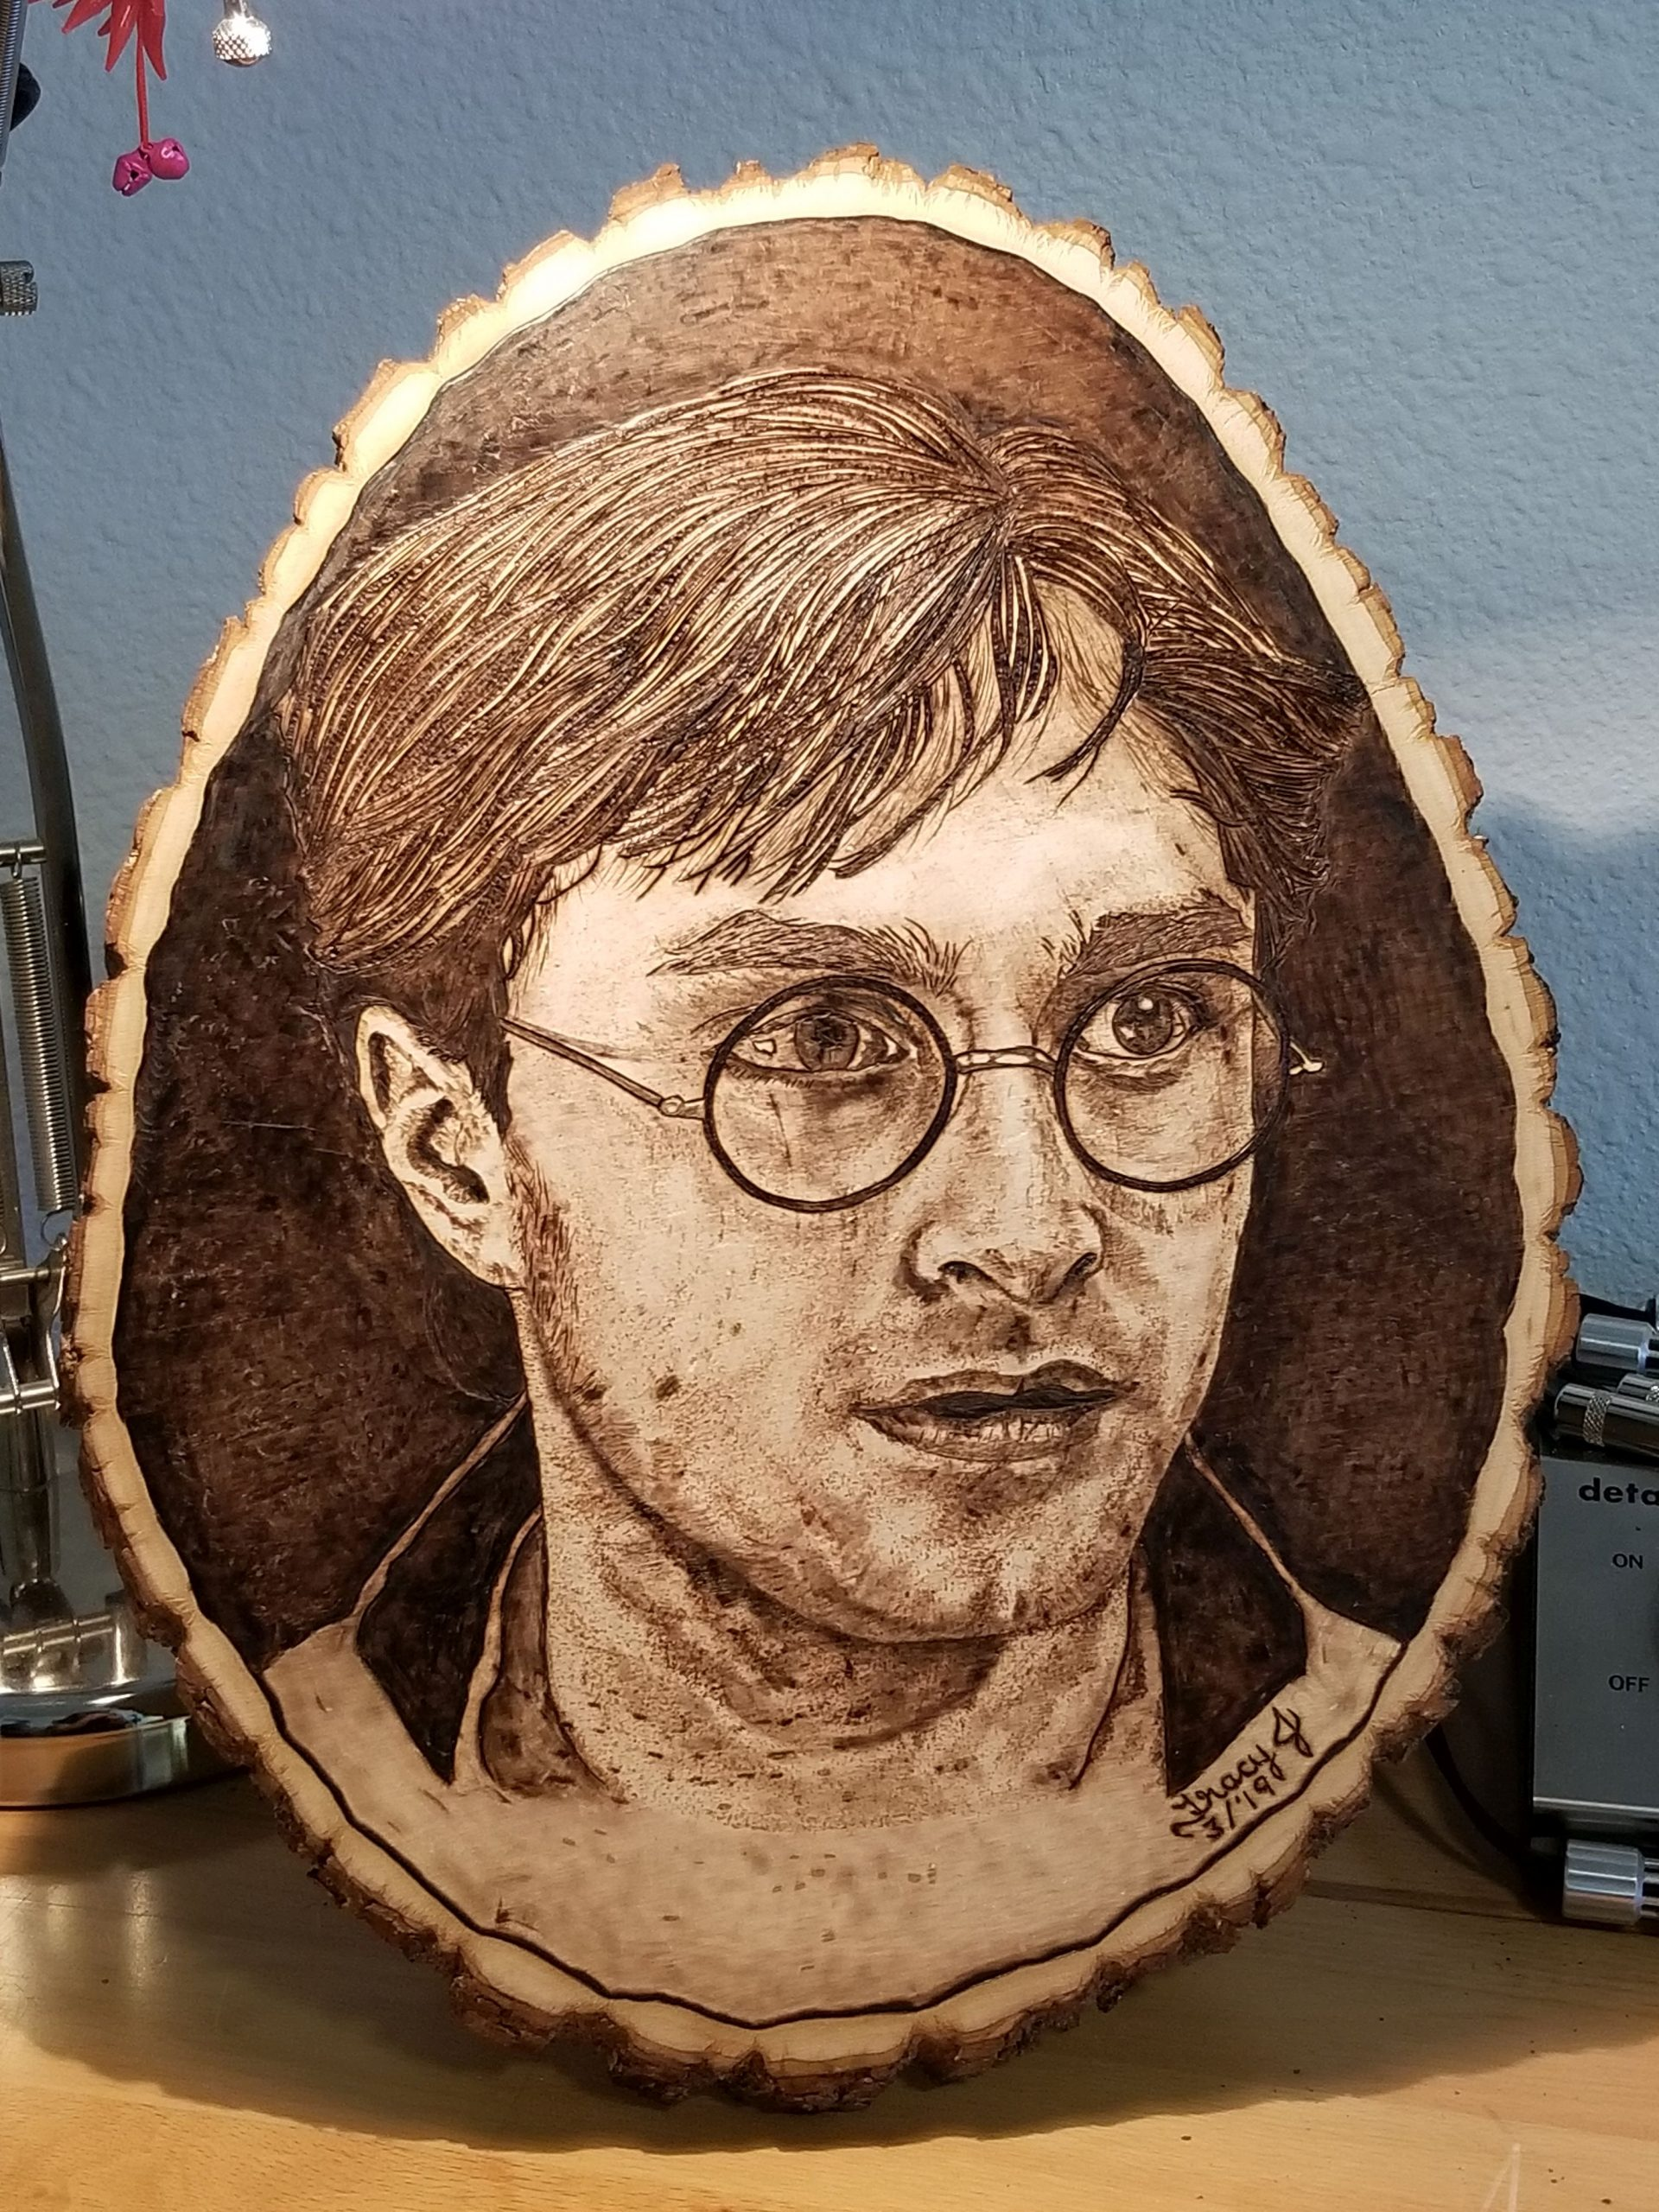 Harry Potter - Finished